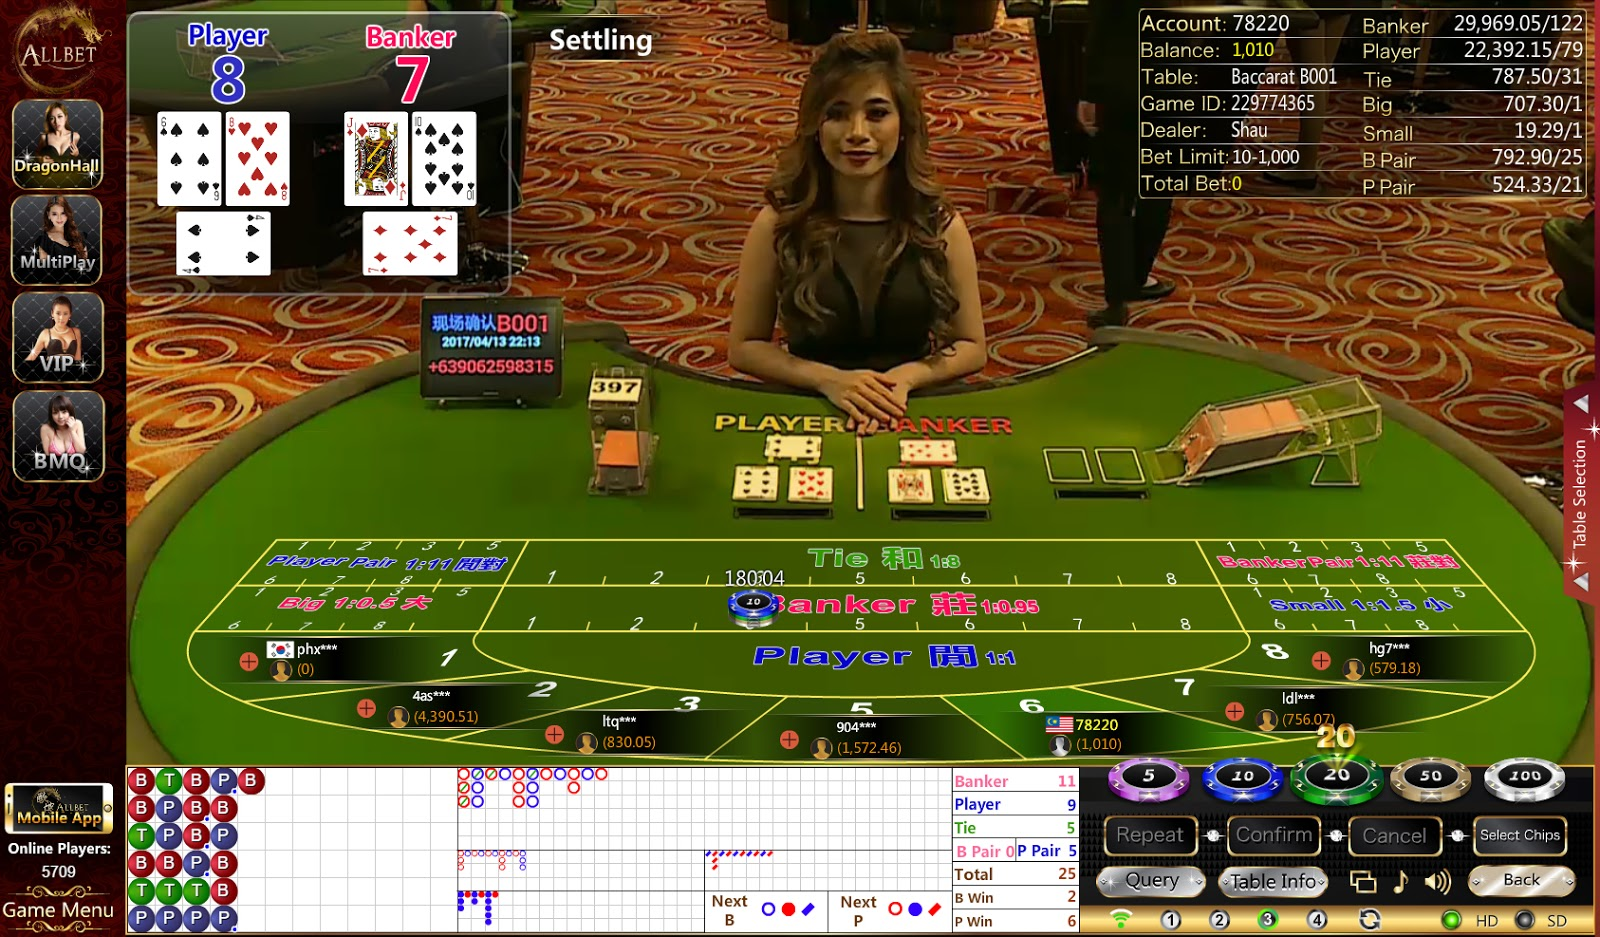 Click here if you want to win more in Baccarat game